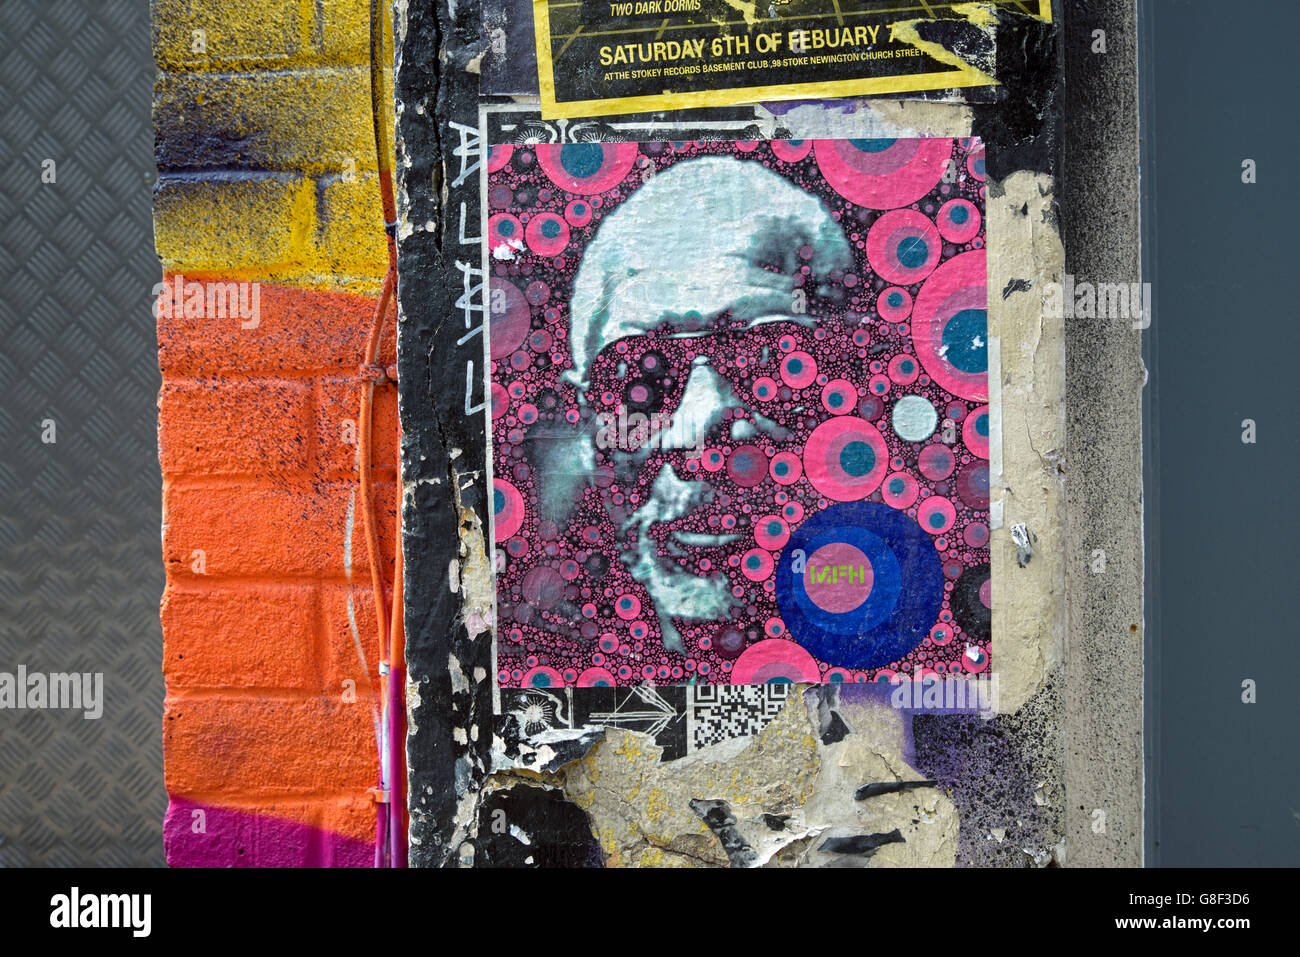 Psychedelic poster on a wall in Chance Street, Shoreditch, East London, UK. - Stock Image